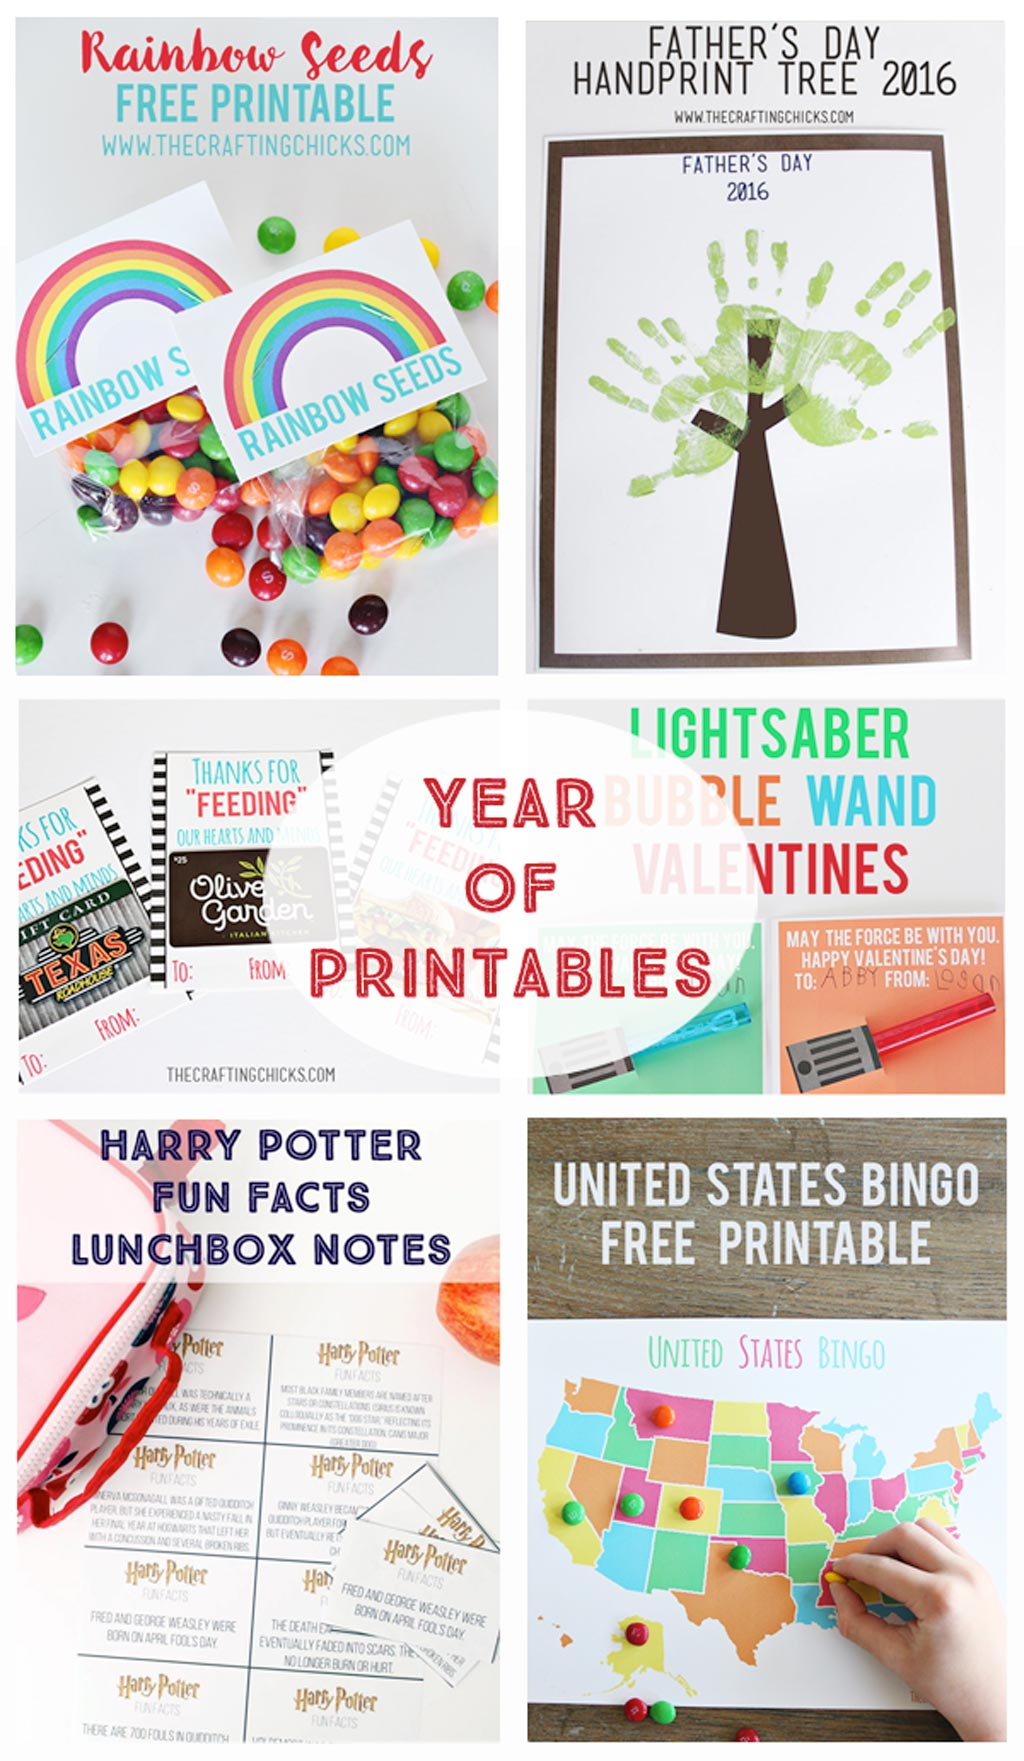 A Year of Printables - New Year, Winter, Valentines, Easter, St. Patrick's Day, Spring, Mother's Day, Father's Day, Kids, Teacher Appreciation, School Lunch Notes, Halloween, Thanksgiving, Christmas... printables for an entire year!